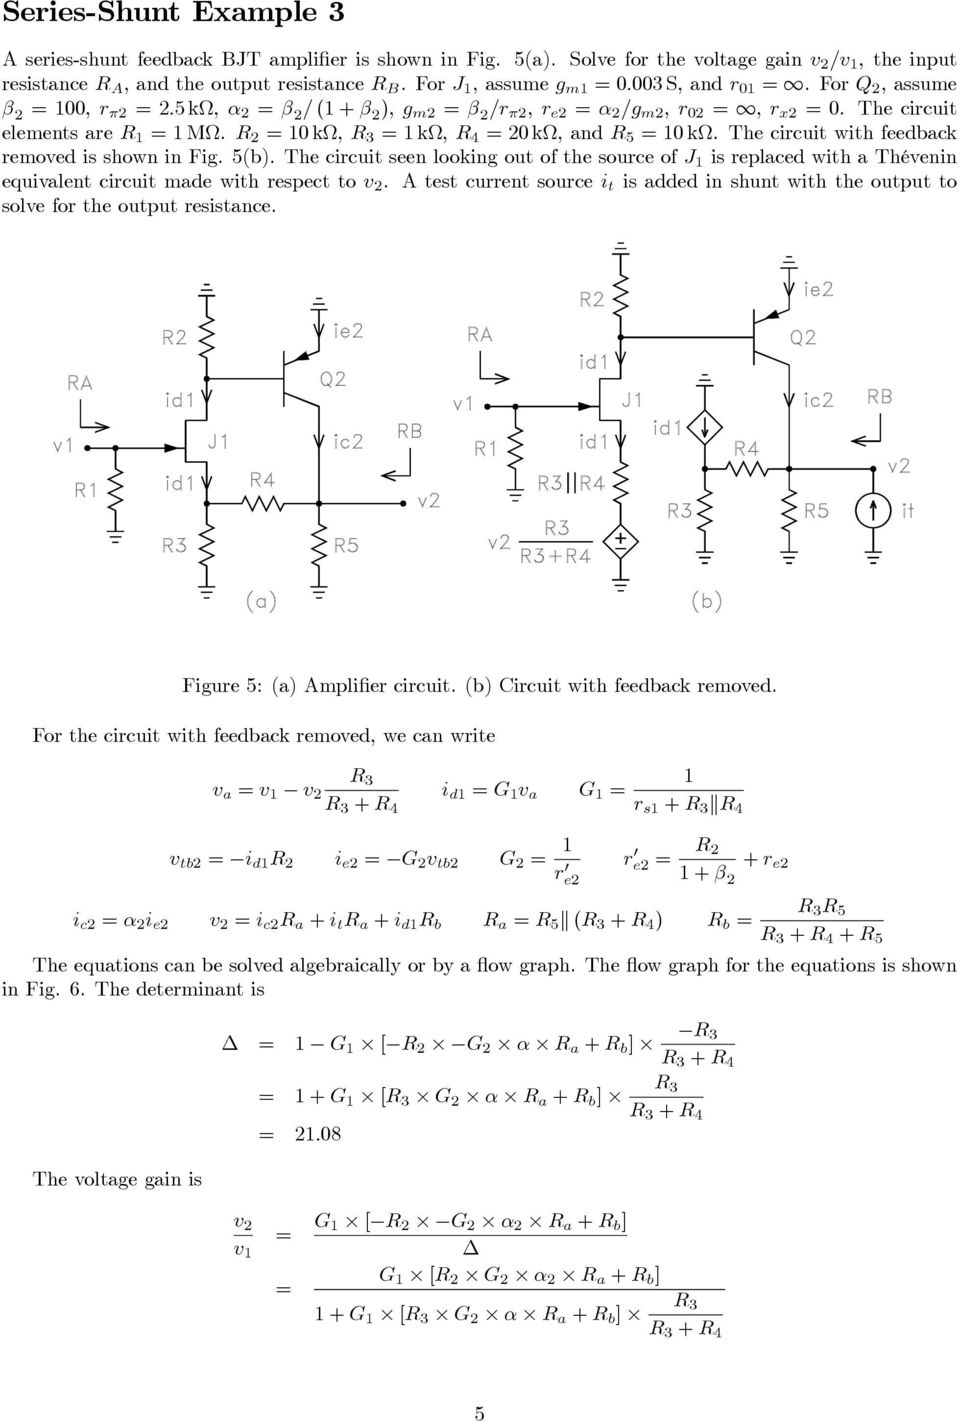 Collection Of Solved Feedback Amplifier Problems Pdf Thevenin Voltage Numerical Example Norton Equivalent The Circuit With Removed Is Shown In Fig 5b